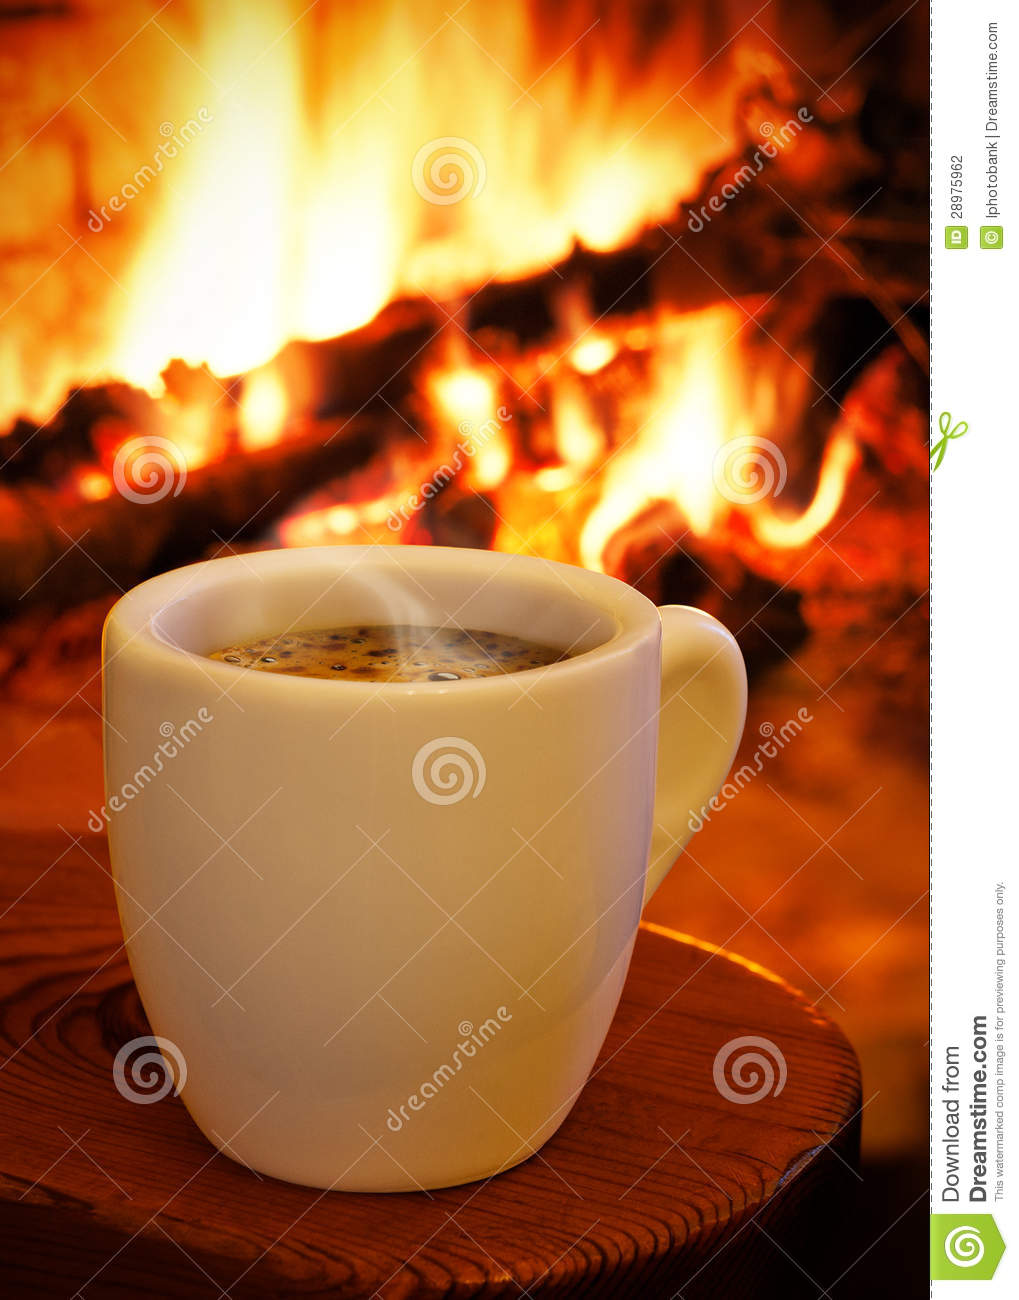 A Cup Of Hot Coffee In Front Of The Fireplace Stock Photo